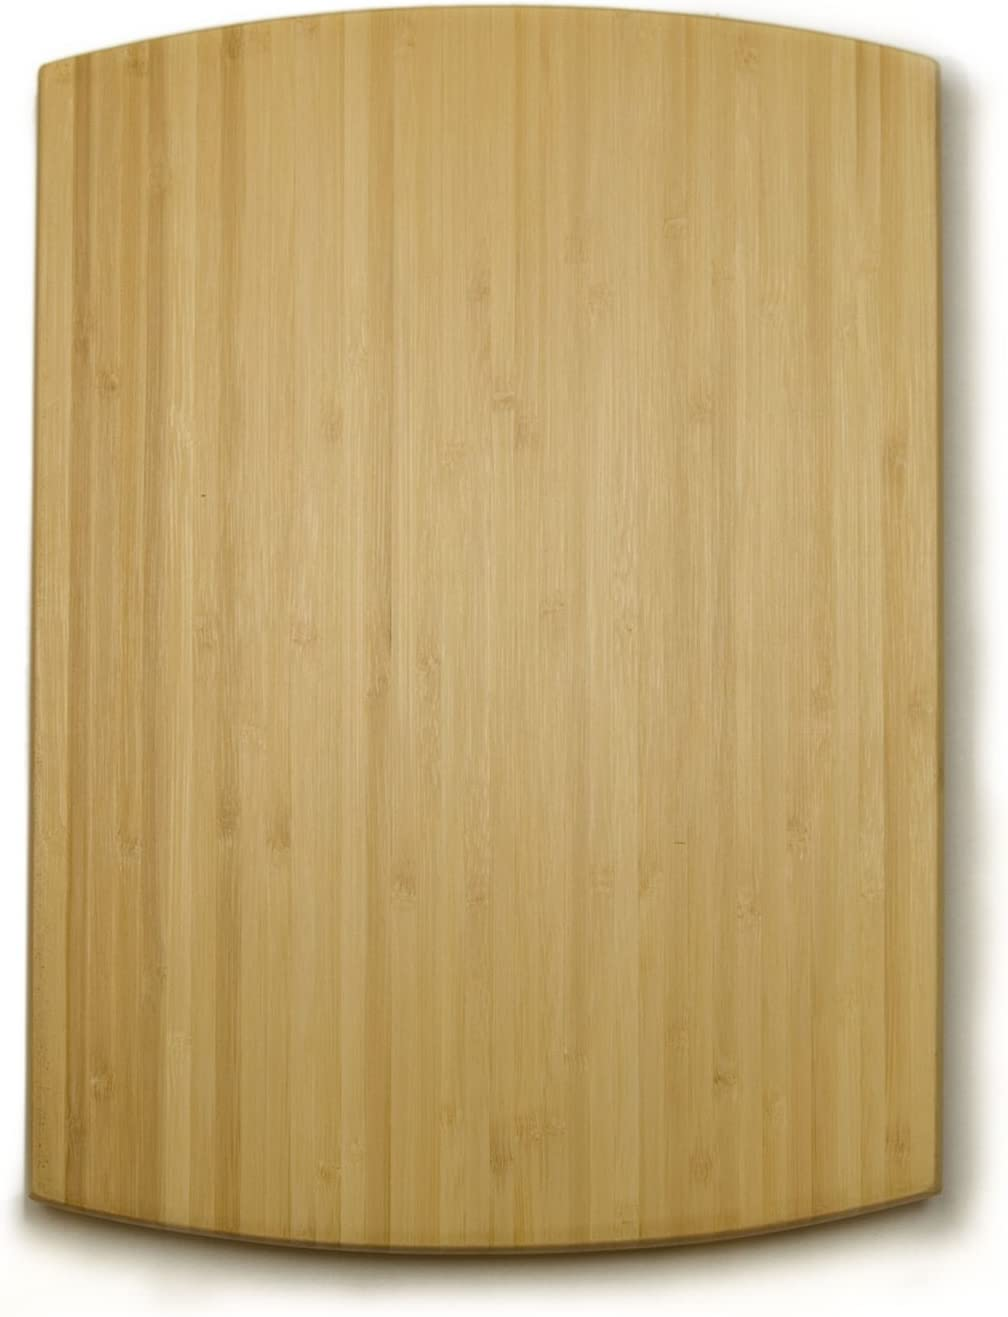 Architec The Gripper Bamboo Cutting Board, 10 by 14-Inch